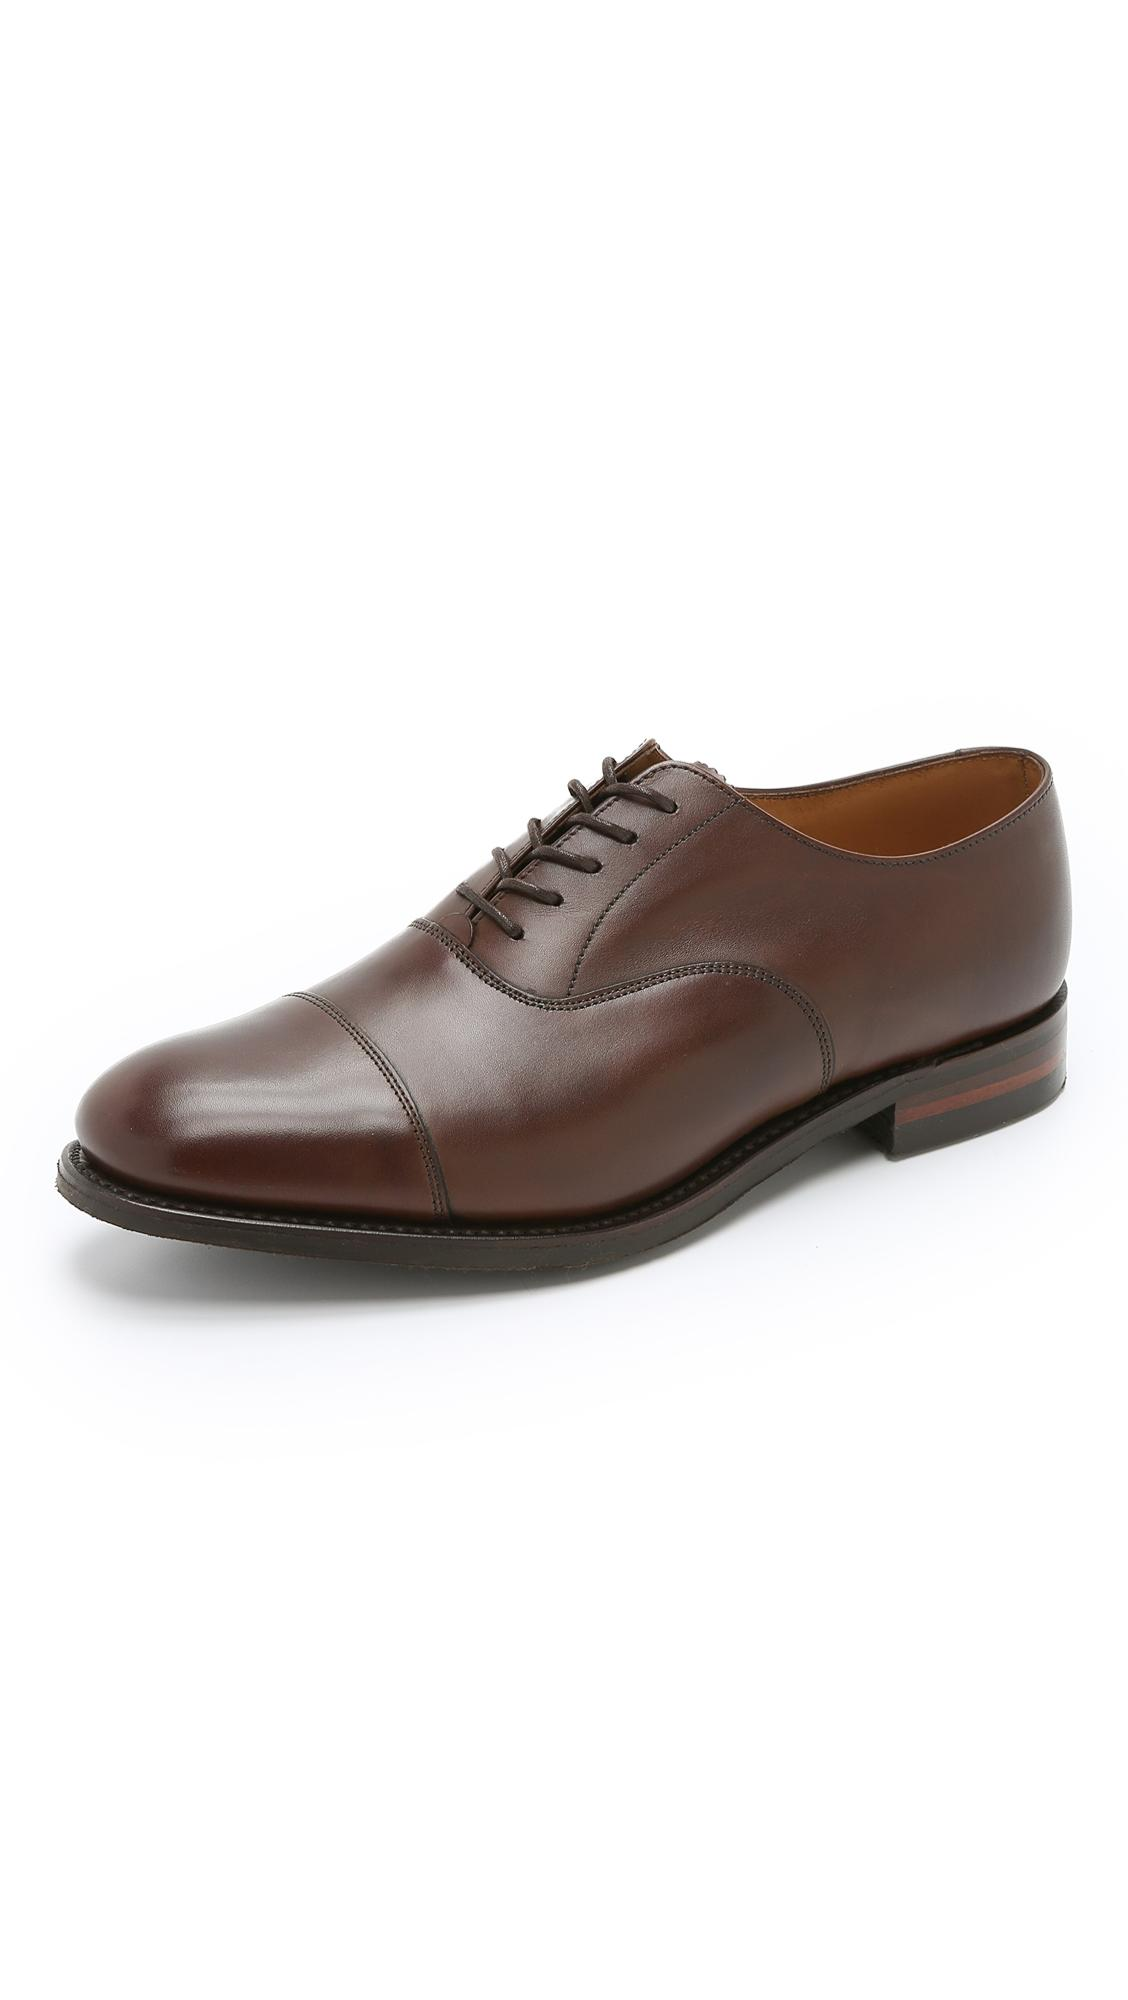 Are Loake Shoes True To Size